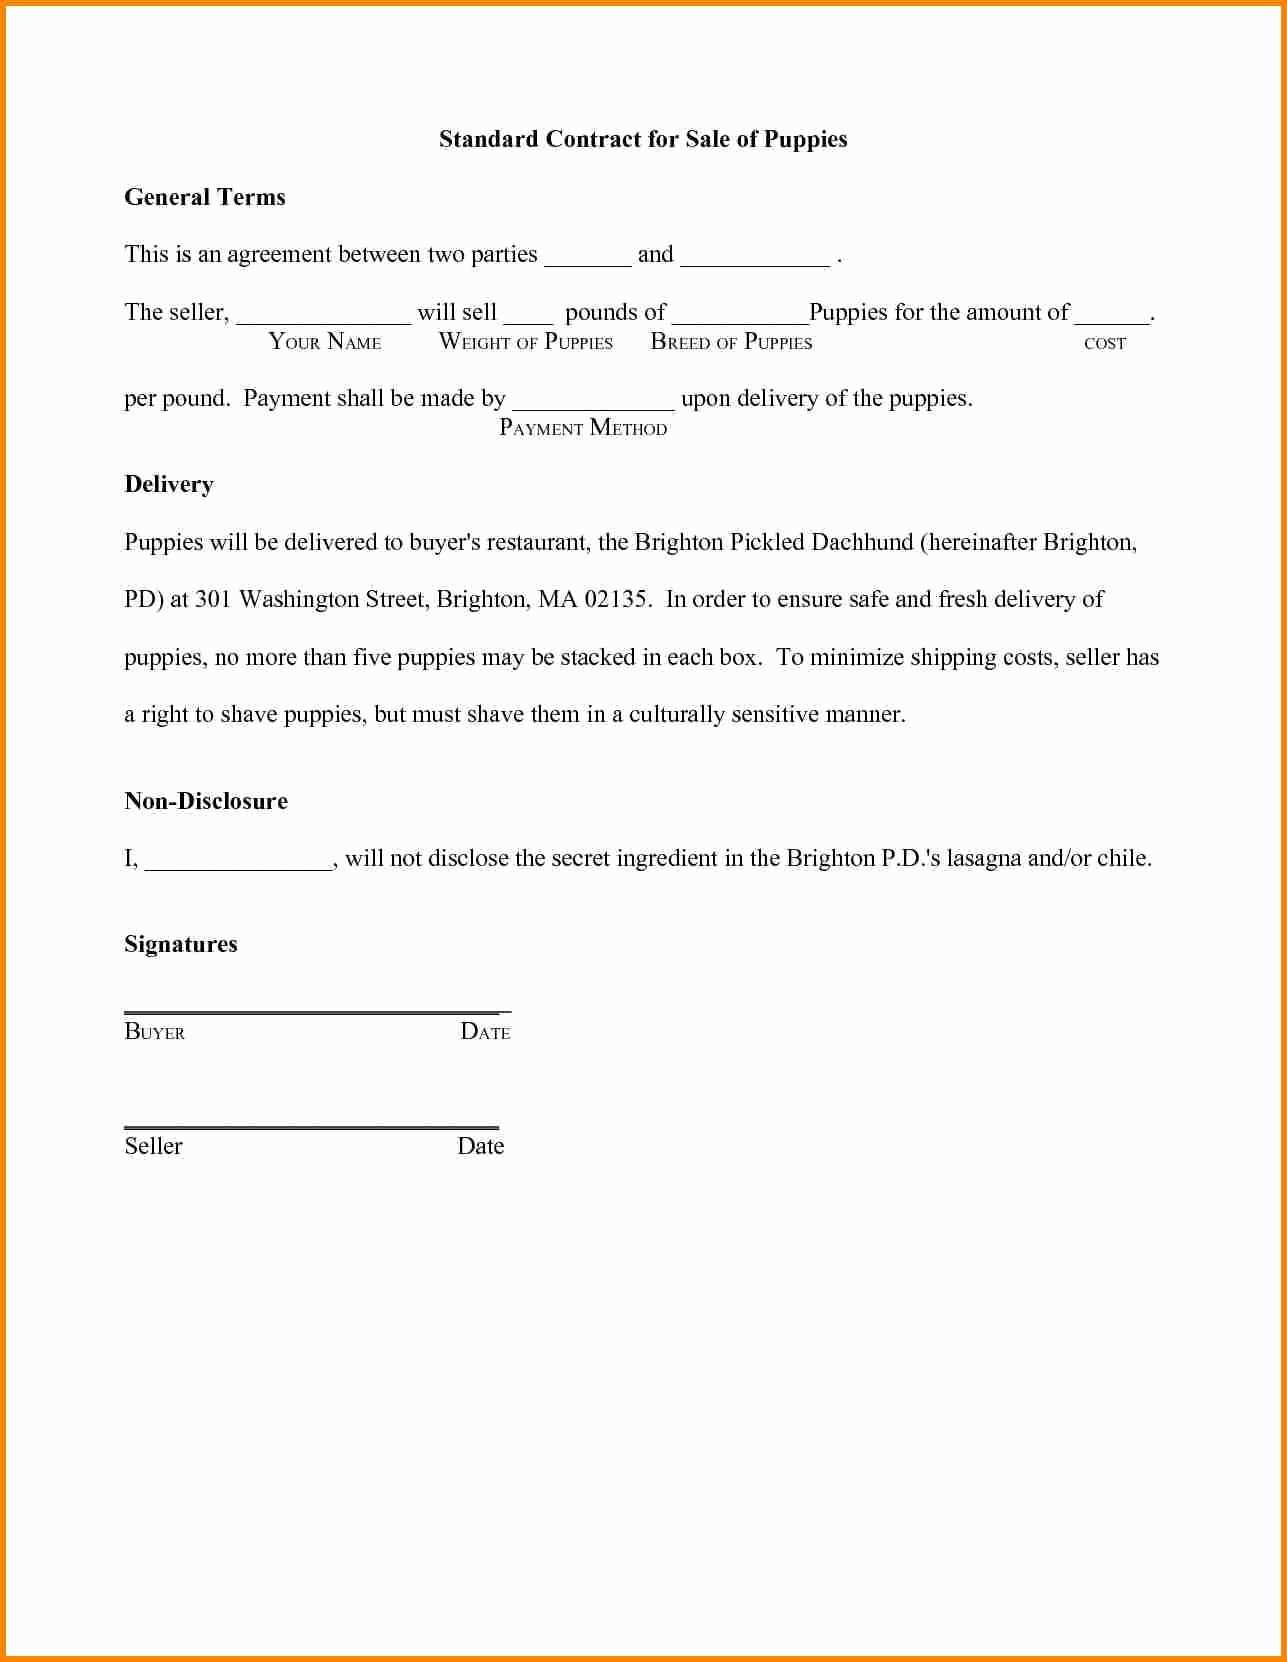 Letter Of Confidentiality and Nondisclosure Template - Confidentiality Agreement Letter Template Awesome 15 Luxury Non